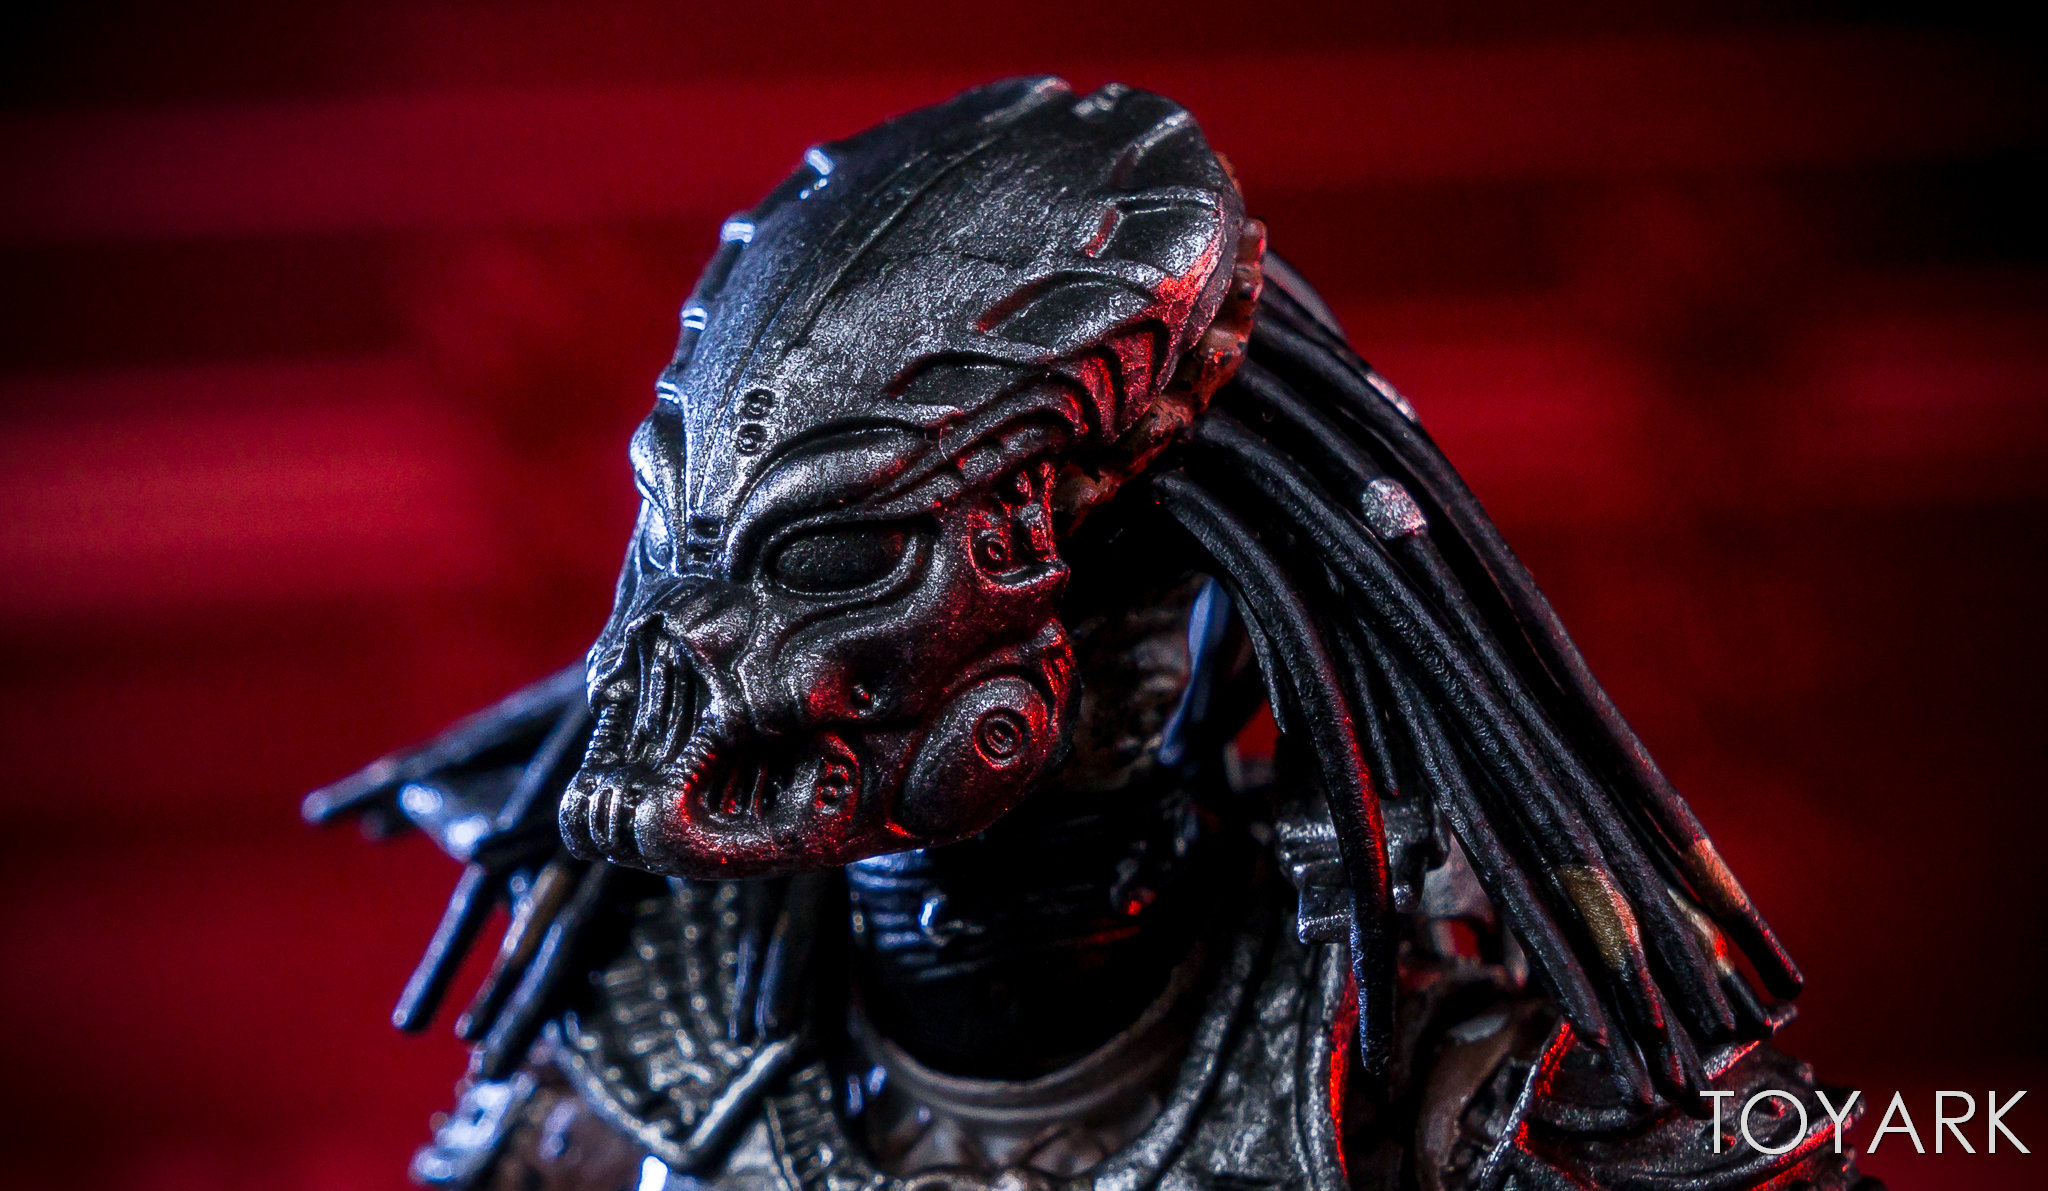 http://news.toyark.com/wp-content/uploads/sites/4/2018/03/Hiya-Predator-2-Figures-038.jpg